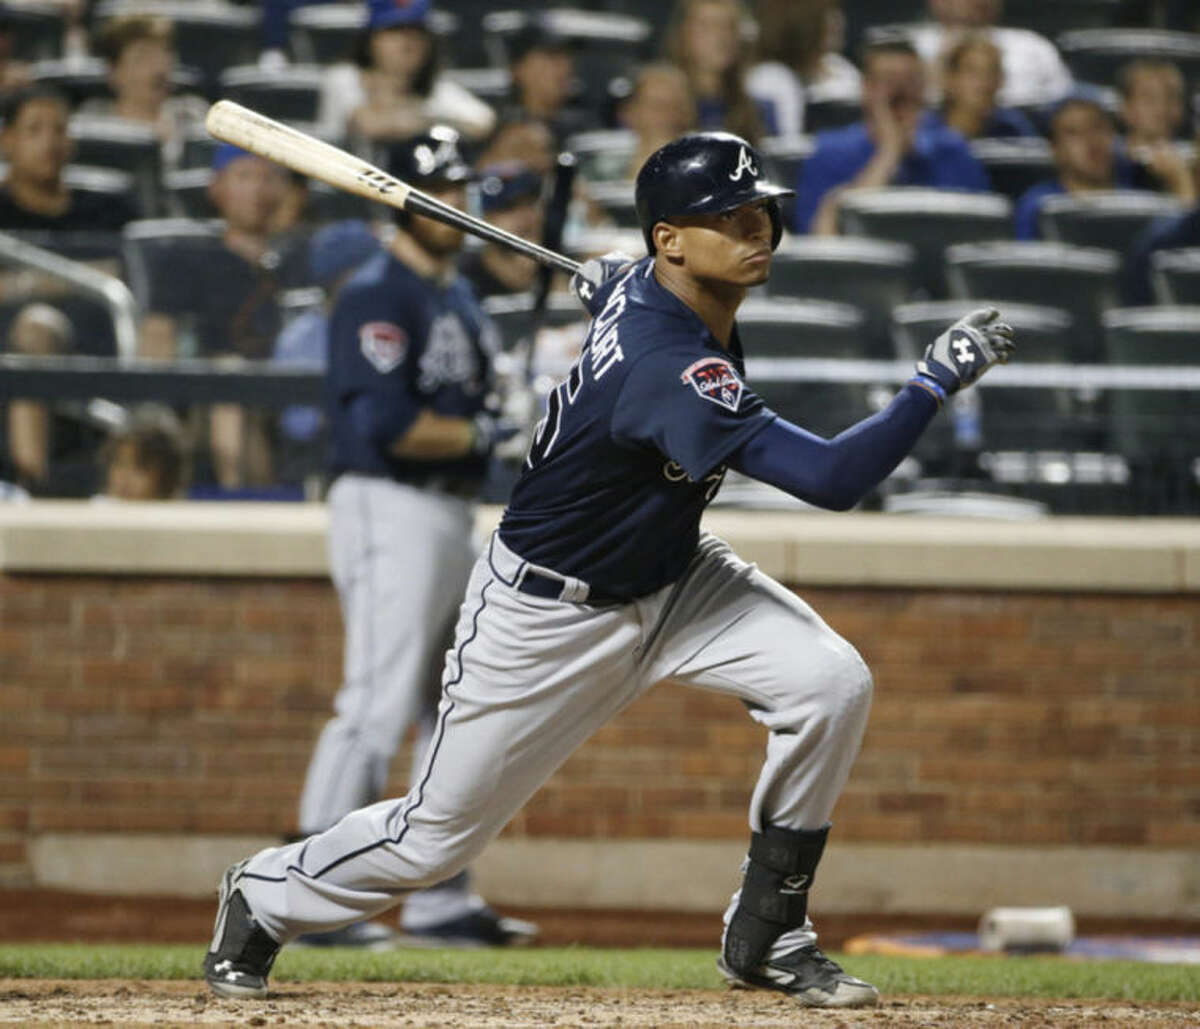 Atlanta Braves catcher Christian Bethancourt hits an eighth-inning RBI single that scored the Braves Chris Johson in a baseball game in New York, Monday, July 7, 2014. (AP Photo/Kathy Willens)